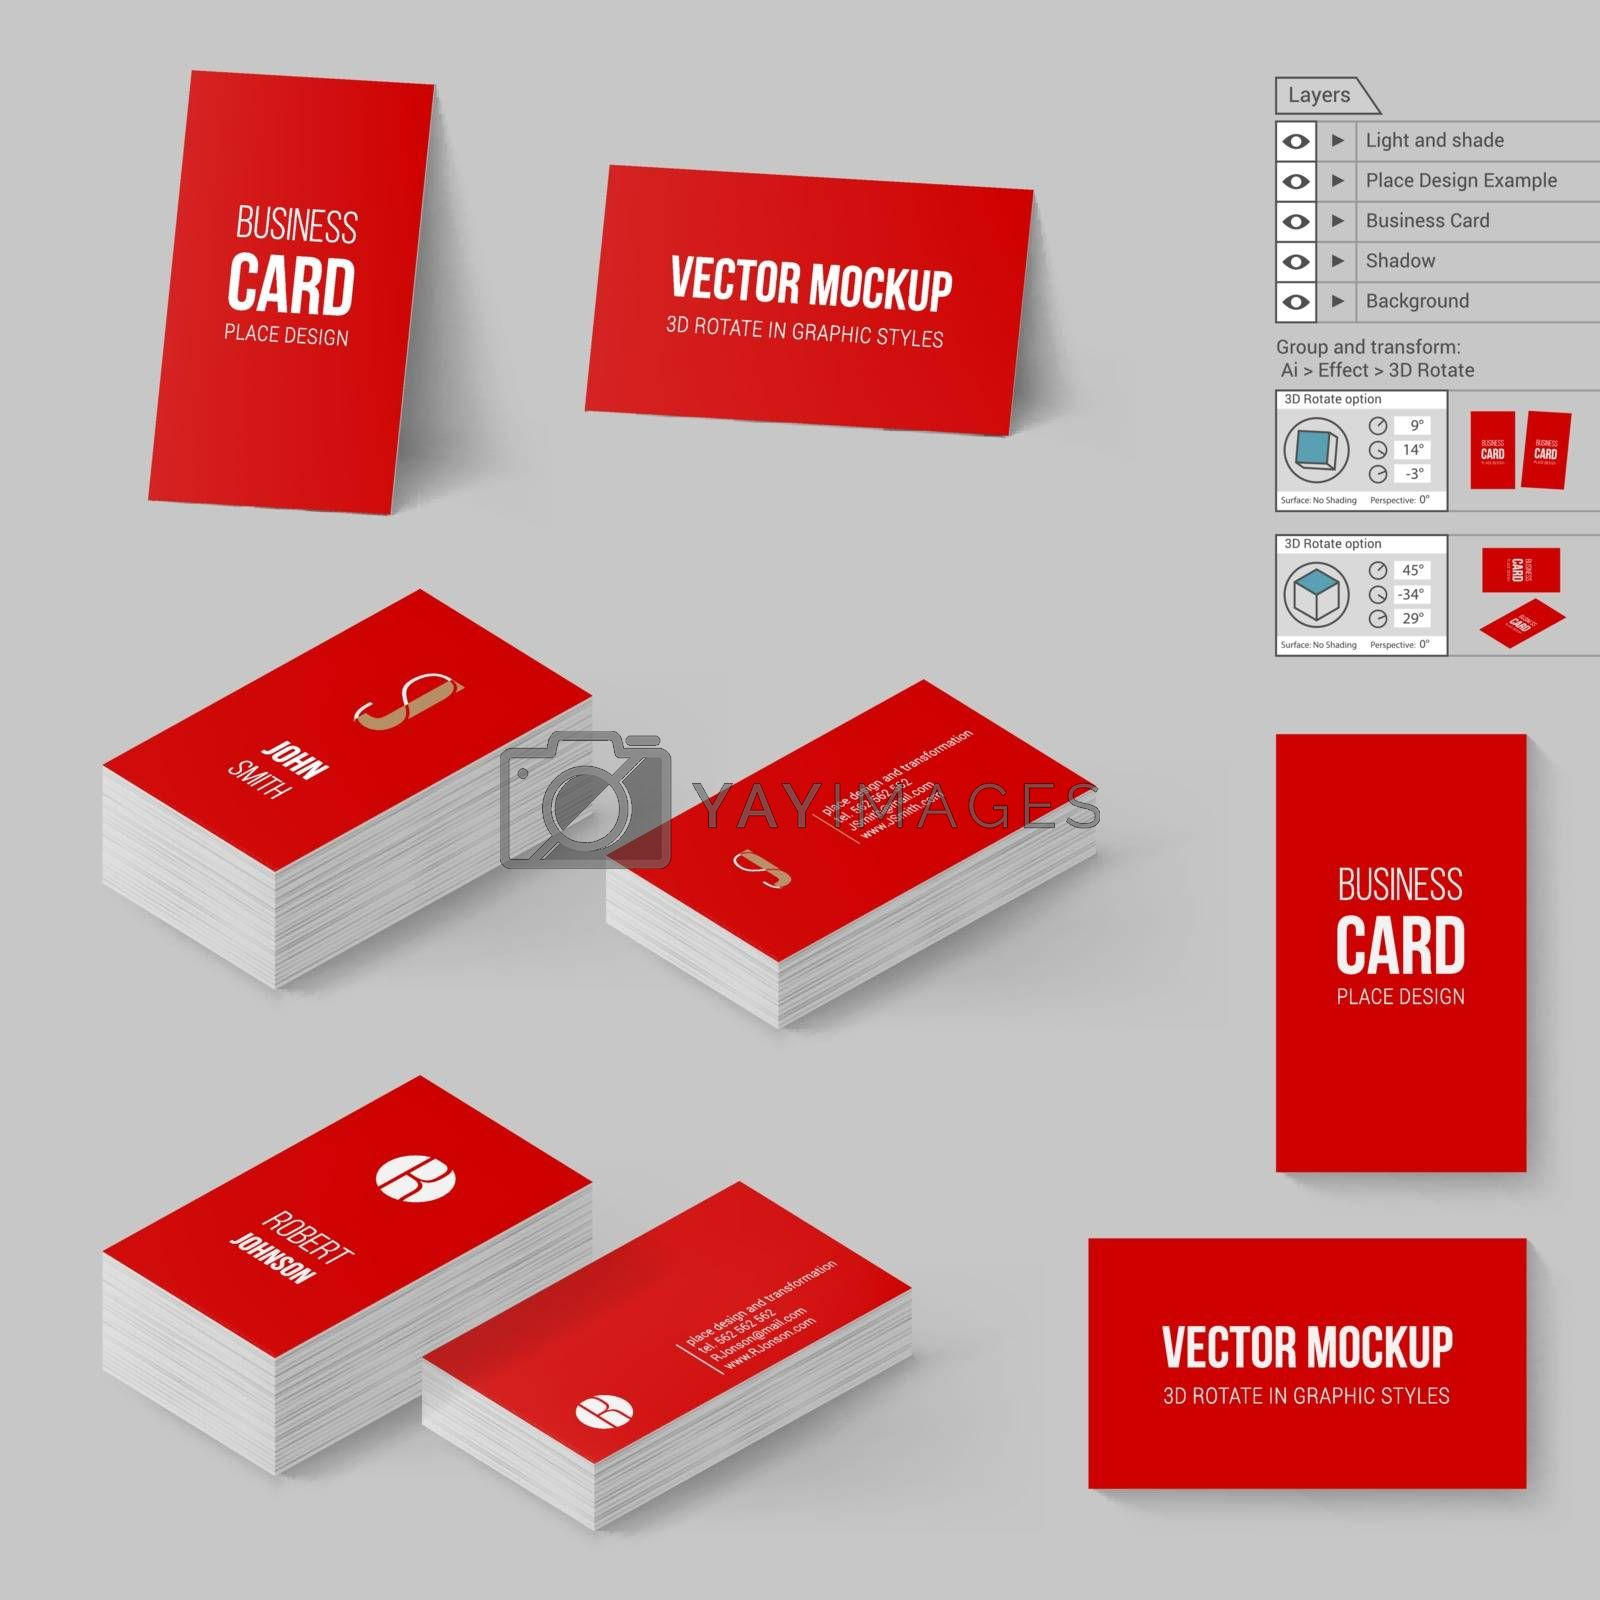 Red Business Cards Template. Corporate Identity. Branding Mock Up with 3D Rotate Options